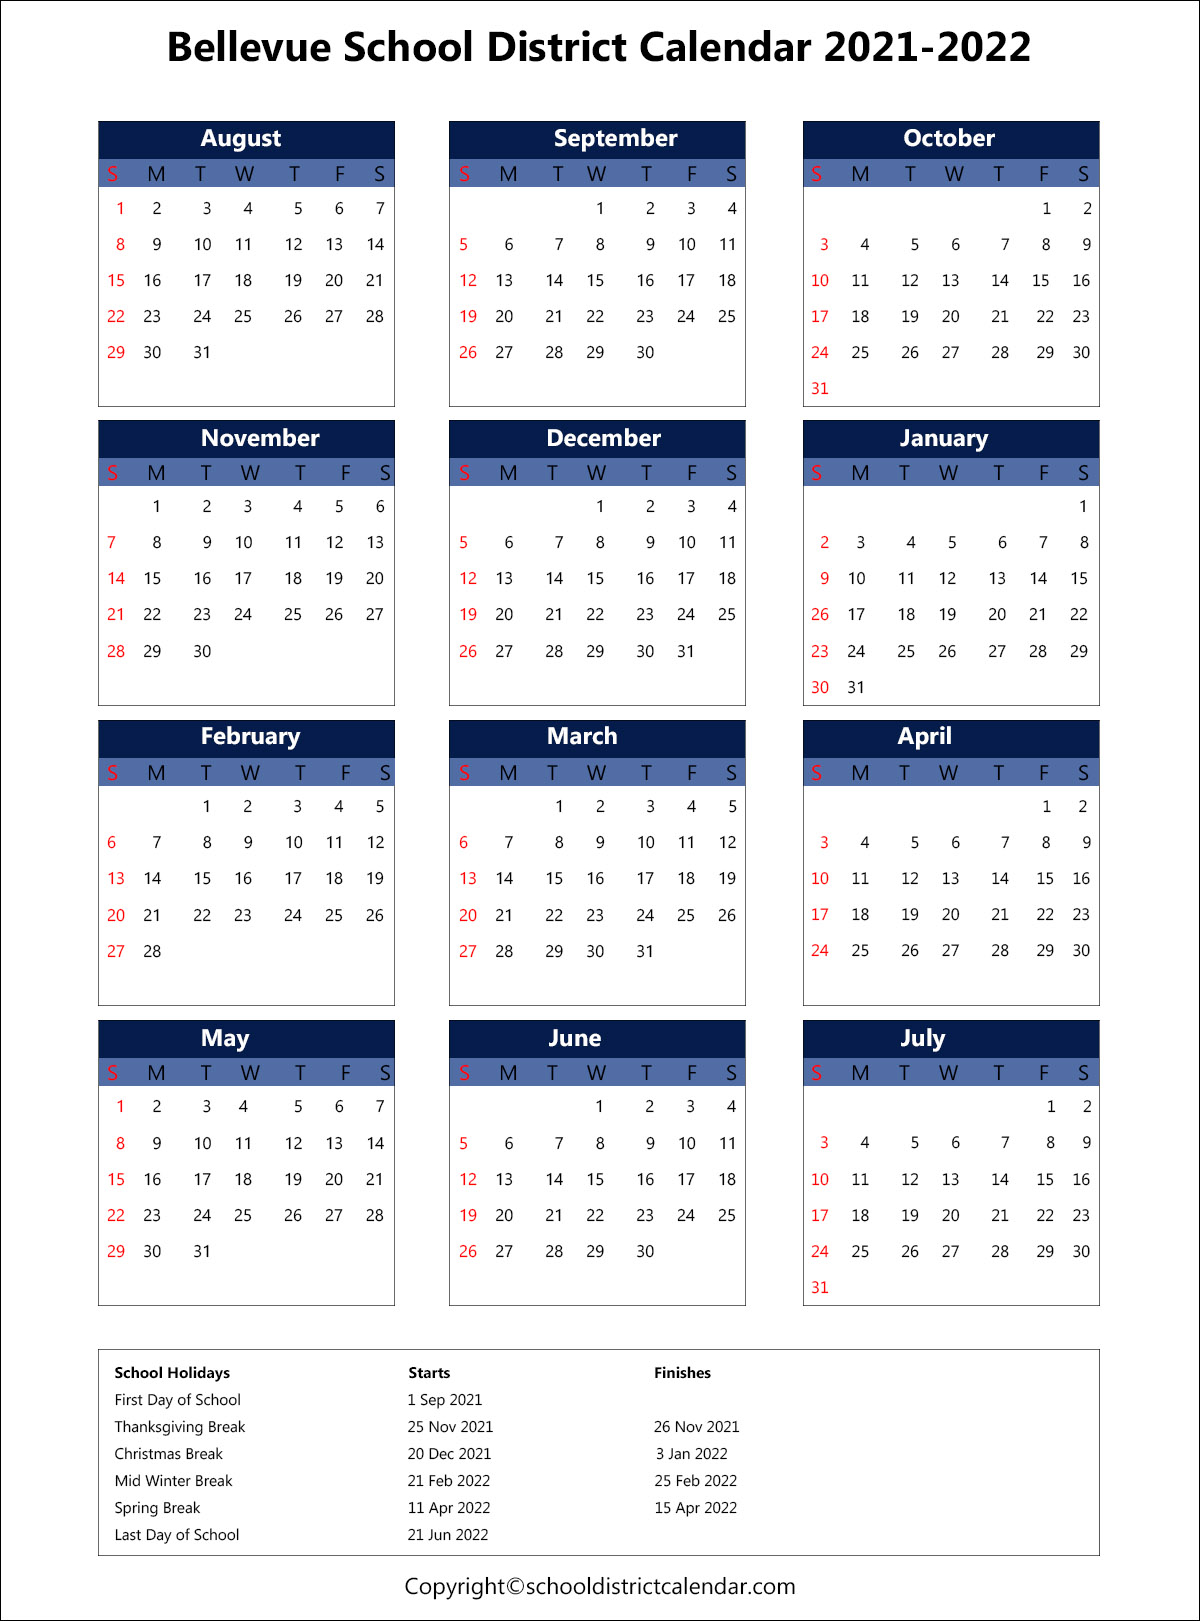 Bellevue School District Calendar Holidays 2021 2022